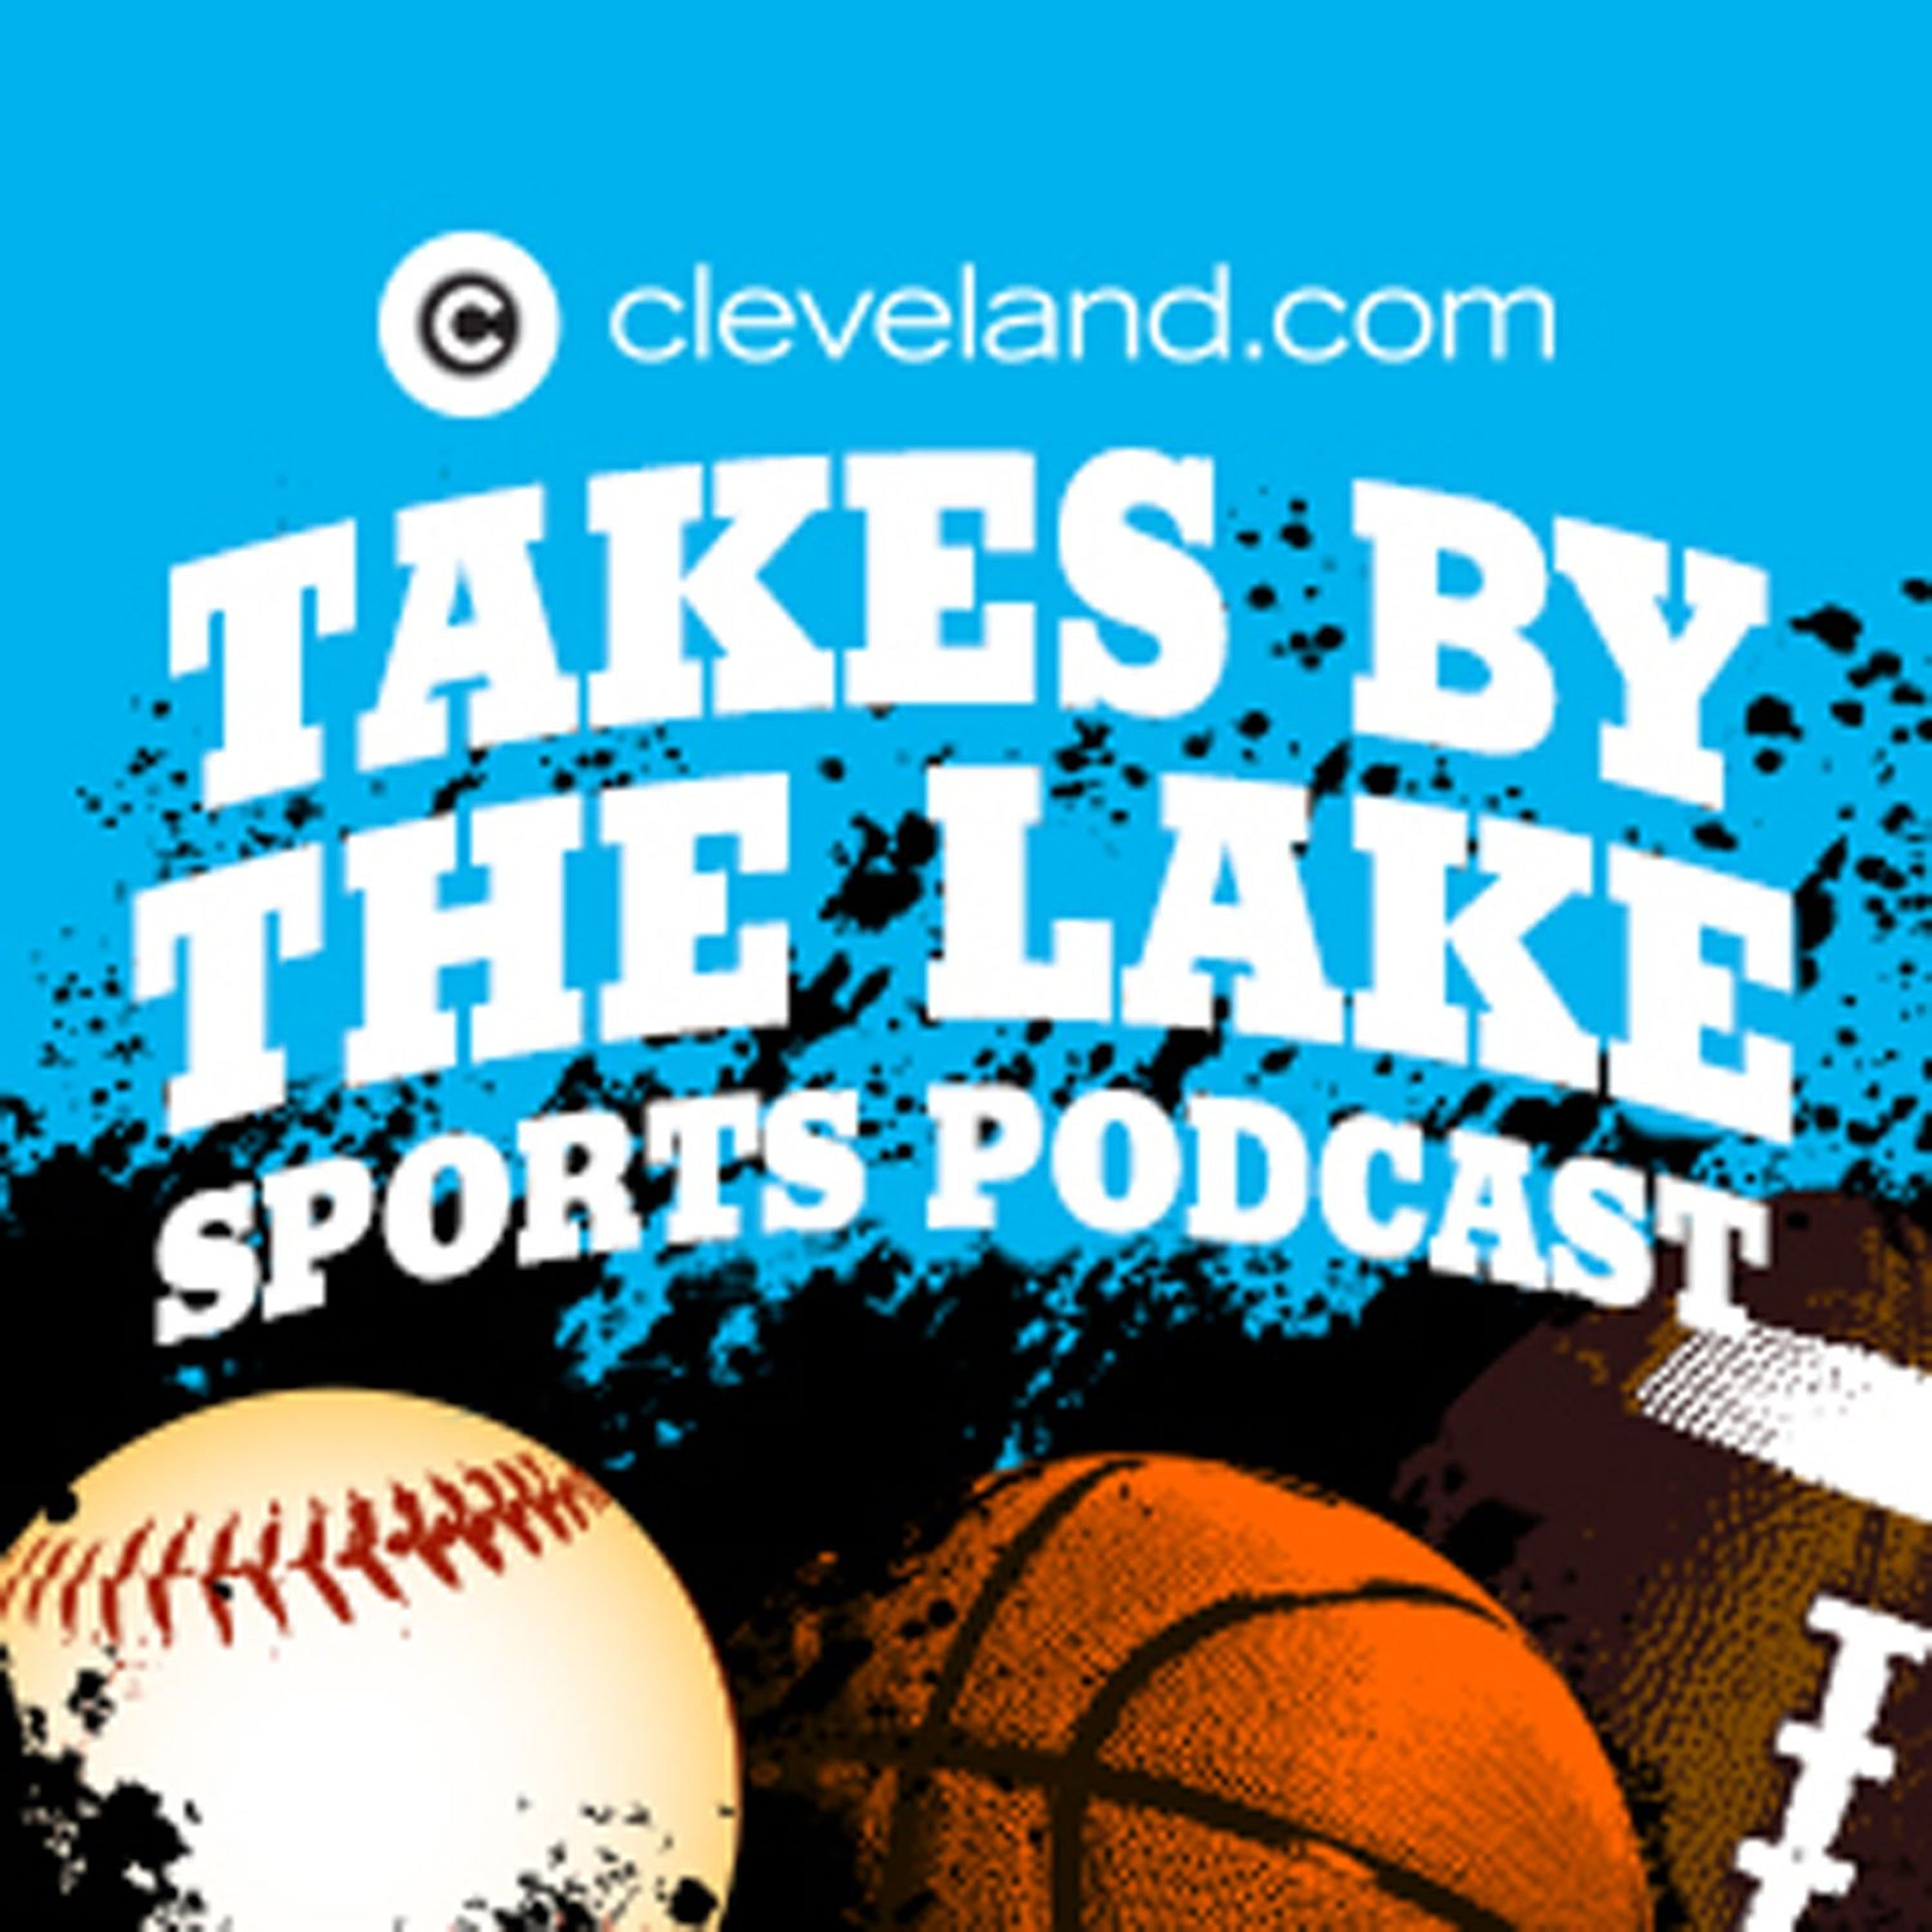 Ep. 108: Do the Browns or Indians have a better shot at a division title; and Ohio's best dodgeball player